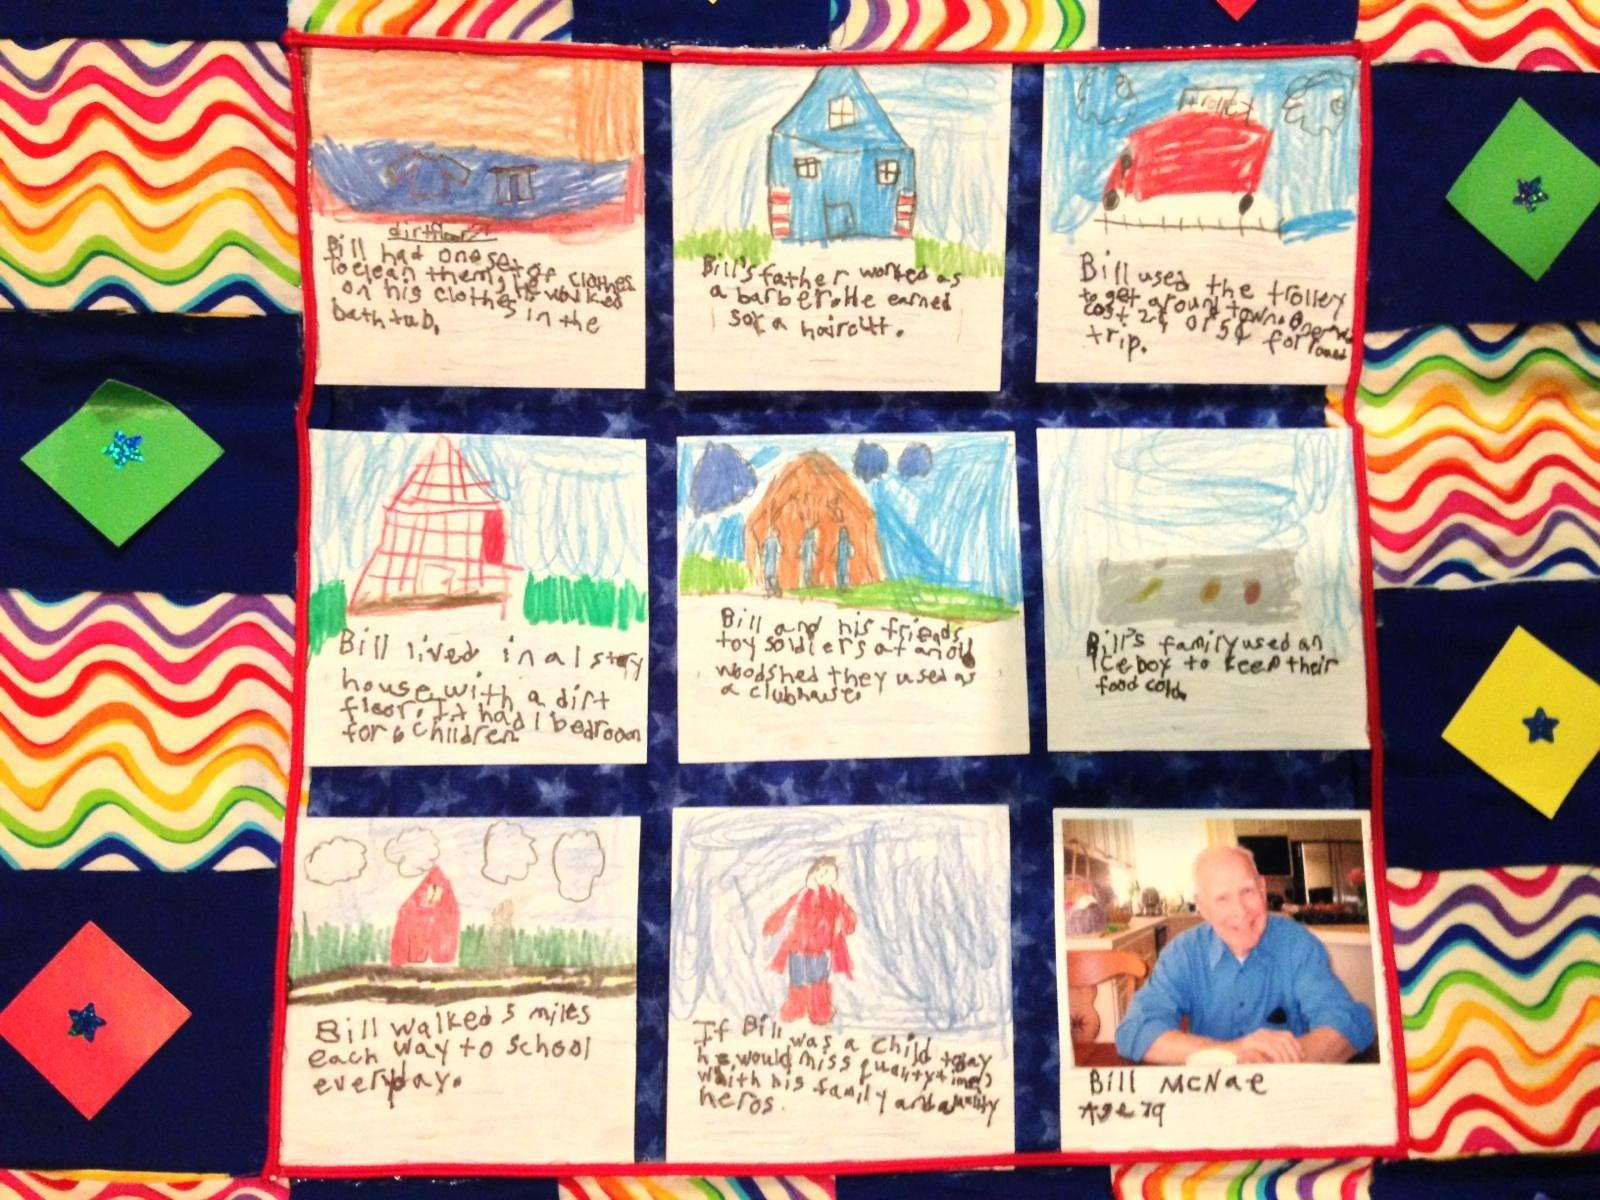 Colin-Schriever-3rd-grade-art-project (after interviewing Bill about his life)